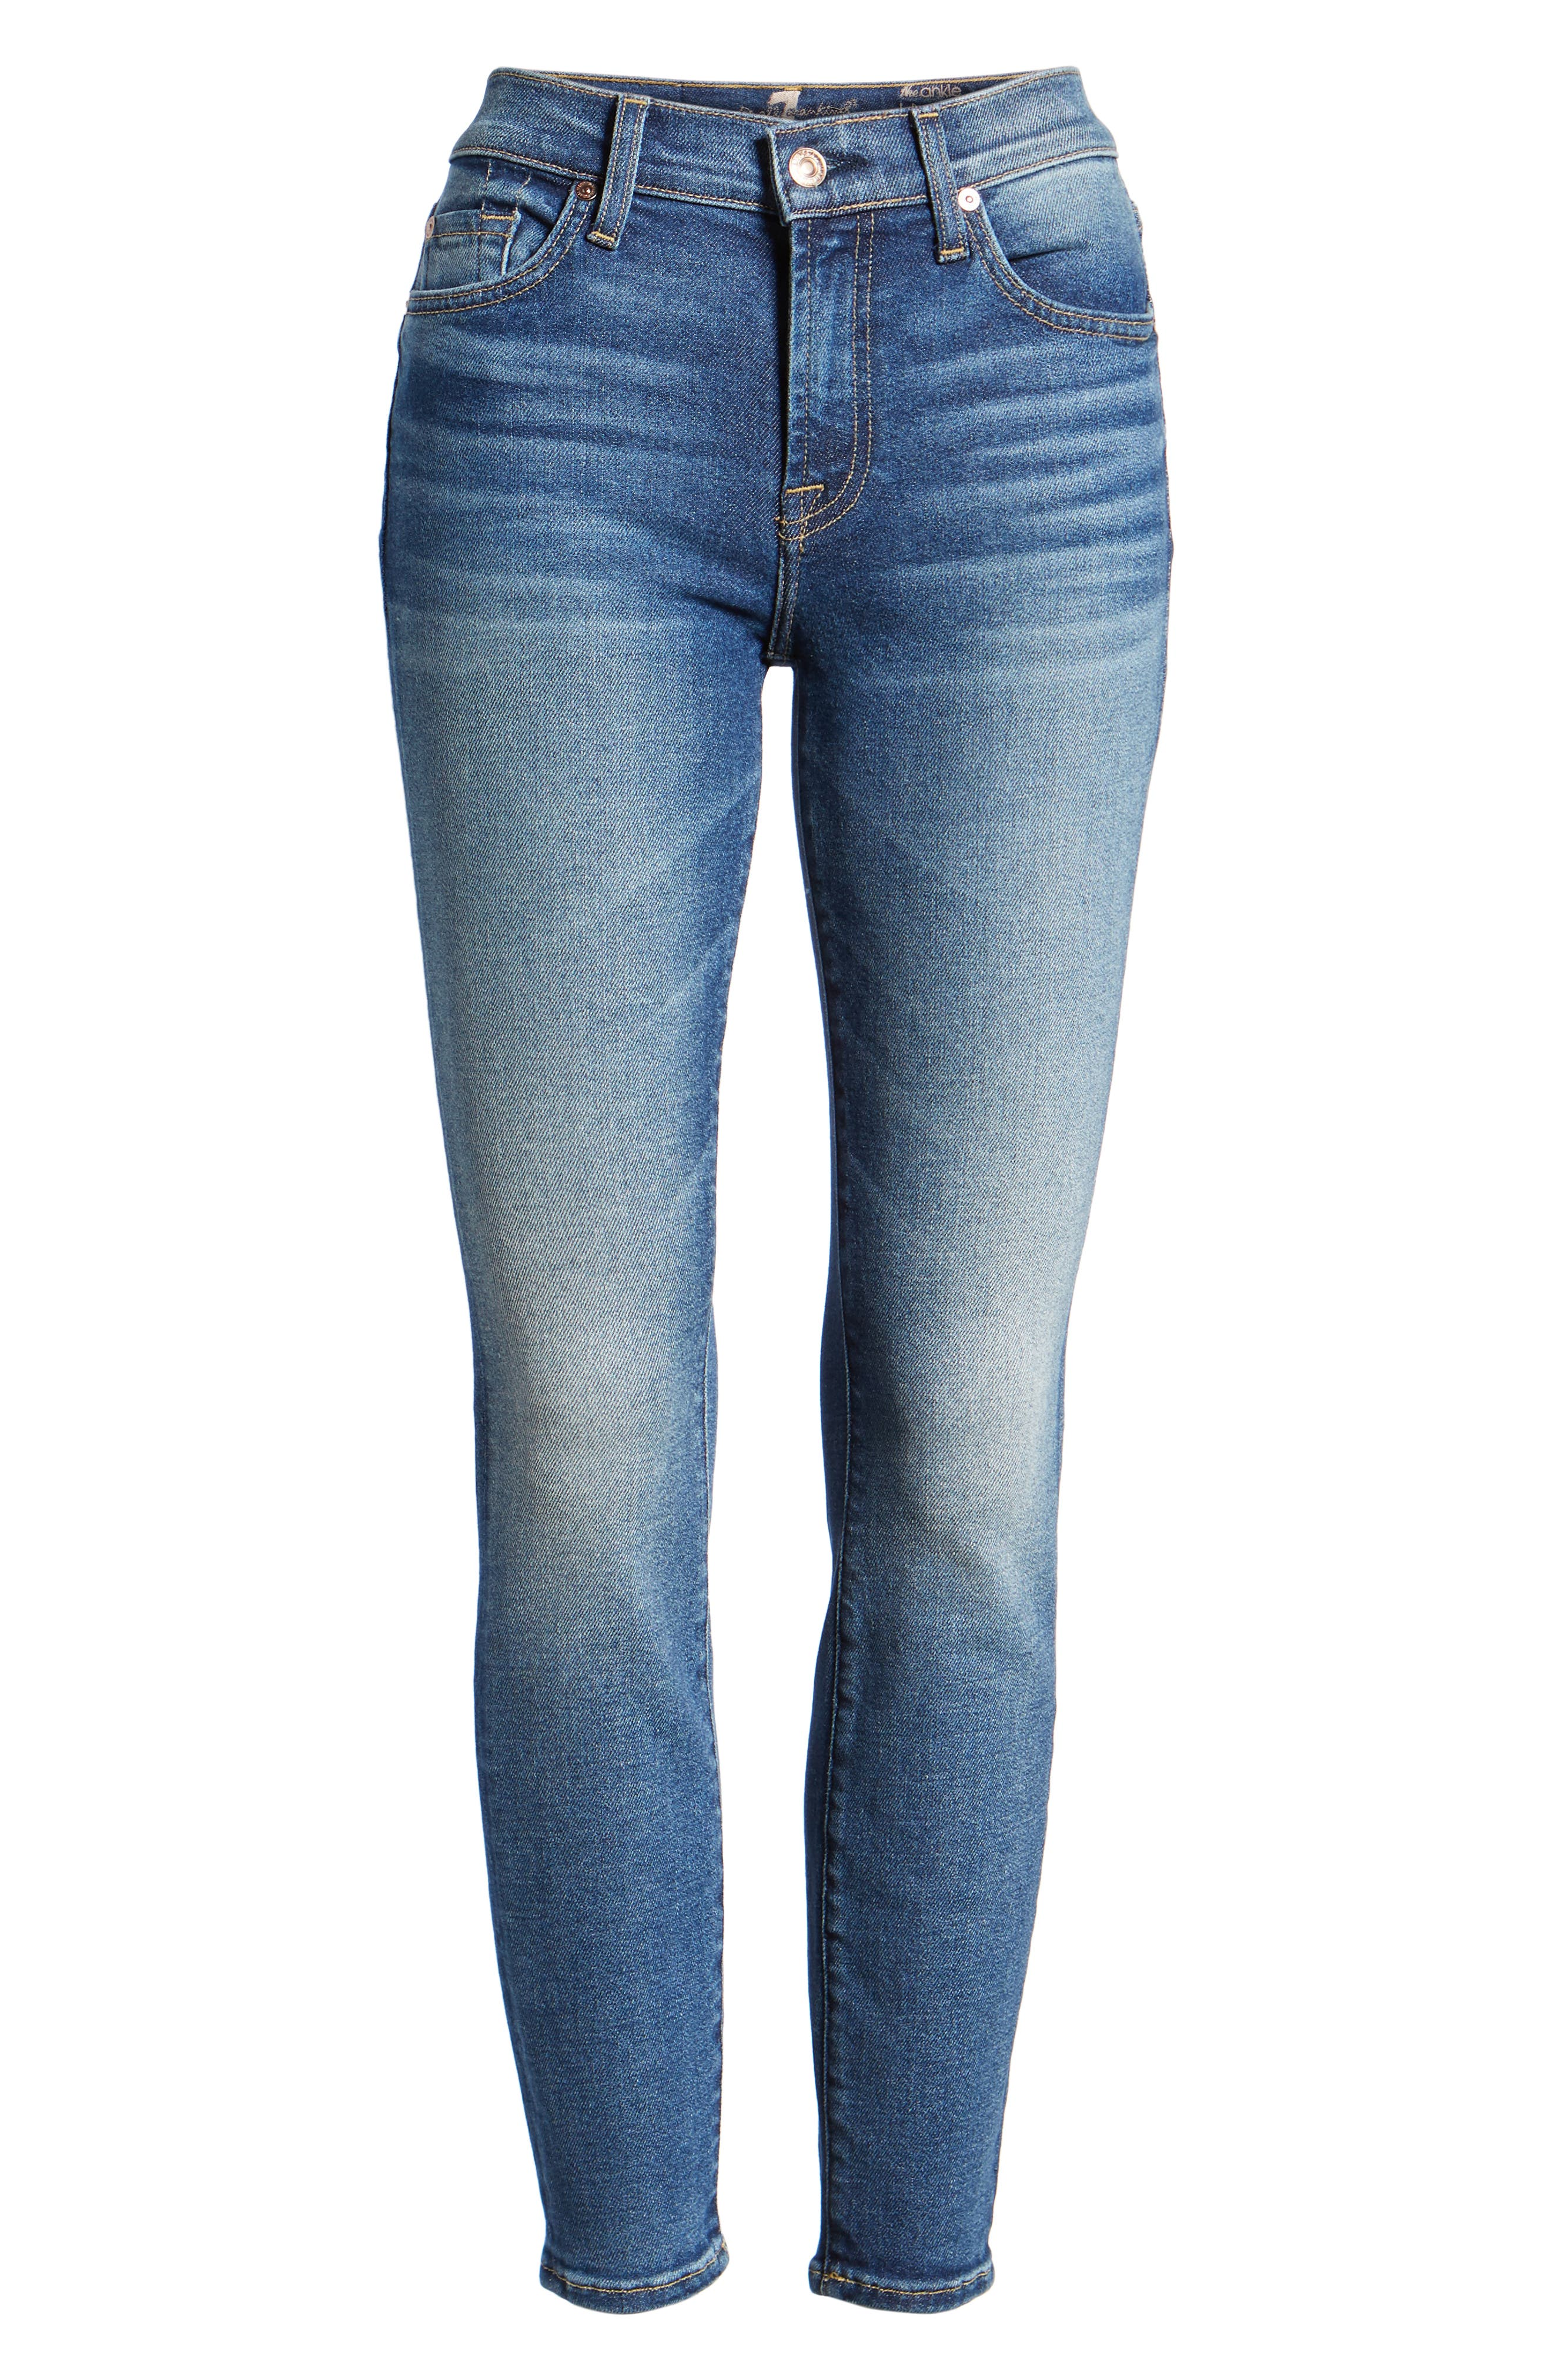 7 FOR ALL MANKIND<SUP>®</SUP>, Luxe Vintage The Ankle Skinny Jeans, Alternate thumbnail 7, color, LUXE VINTAGE FEMME